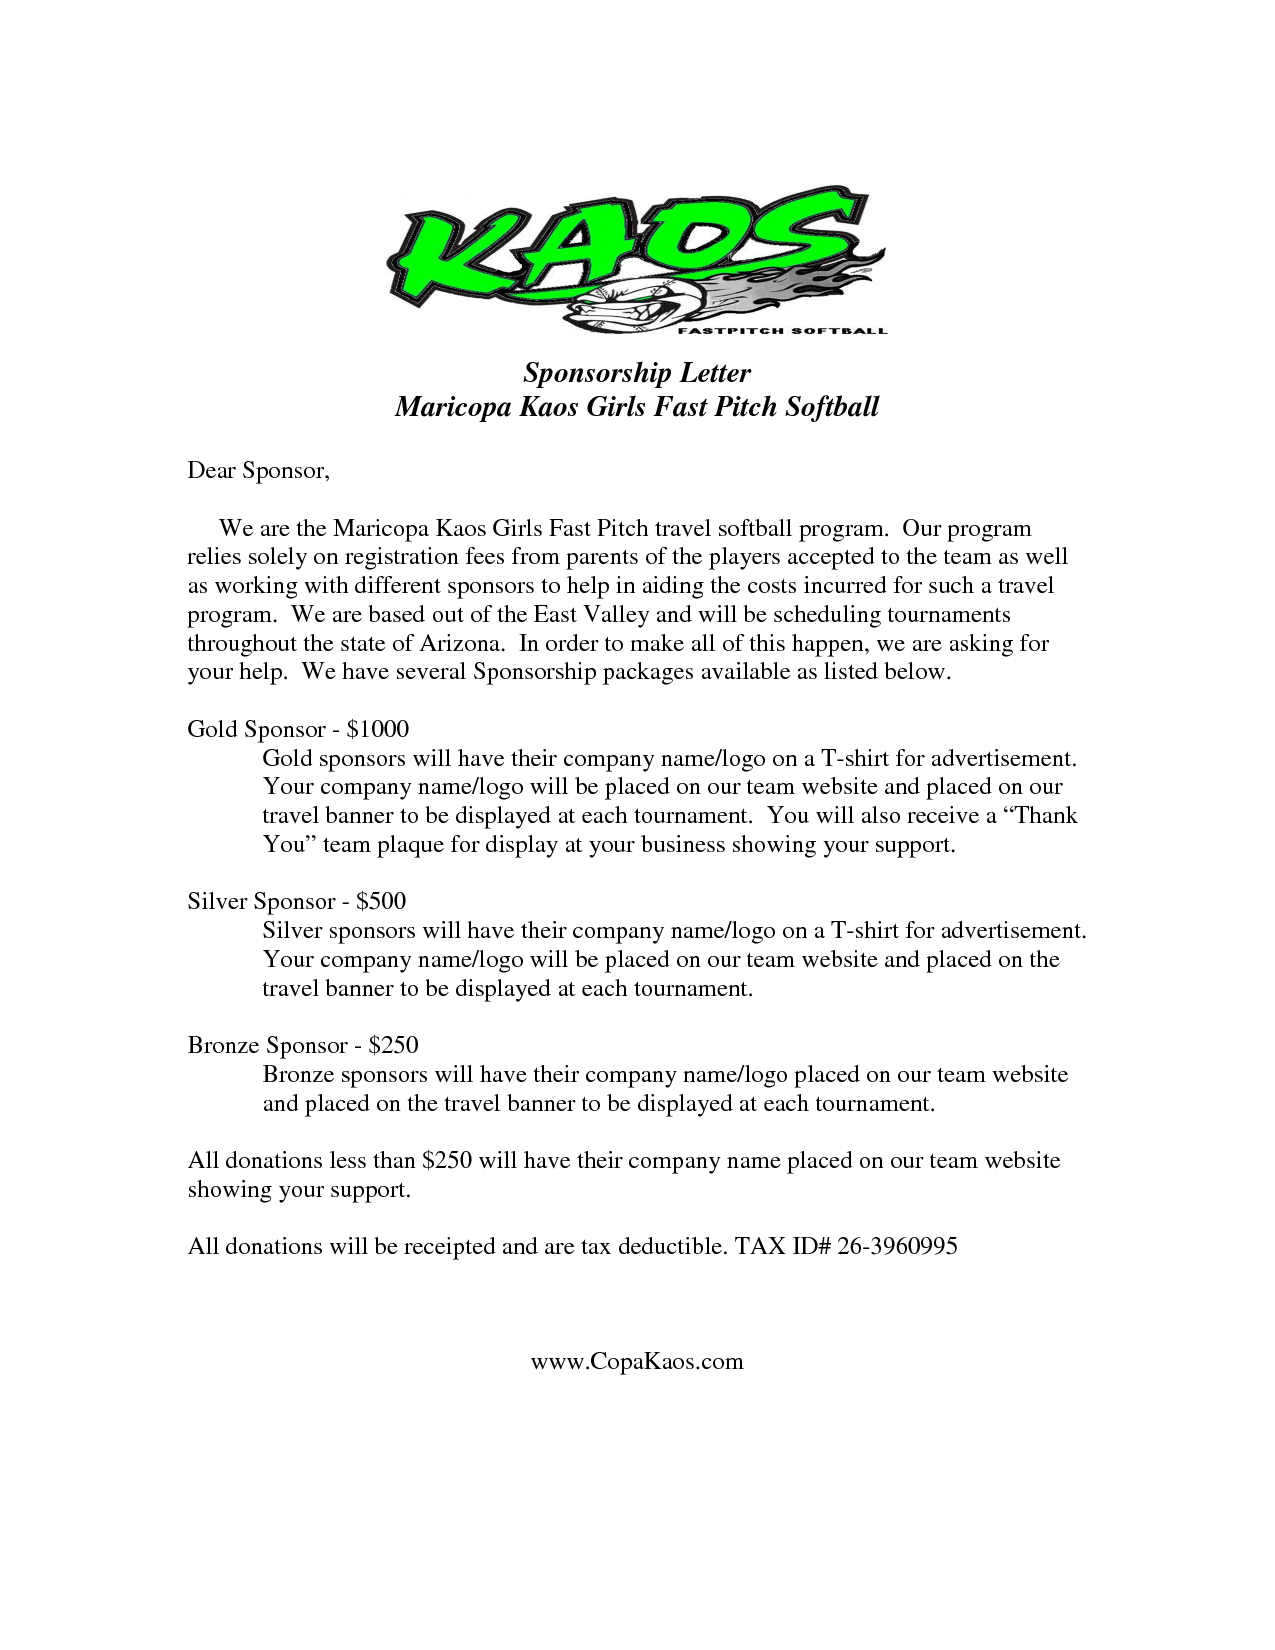 cheerleading donation letter template example-Image result for sample sponsor request letter donation 13-r